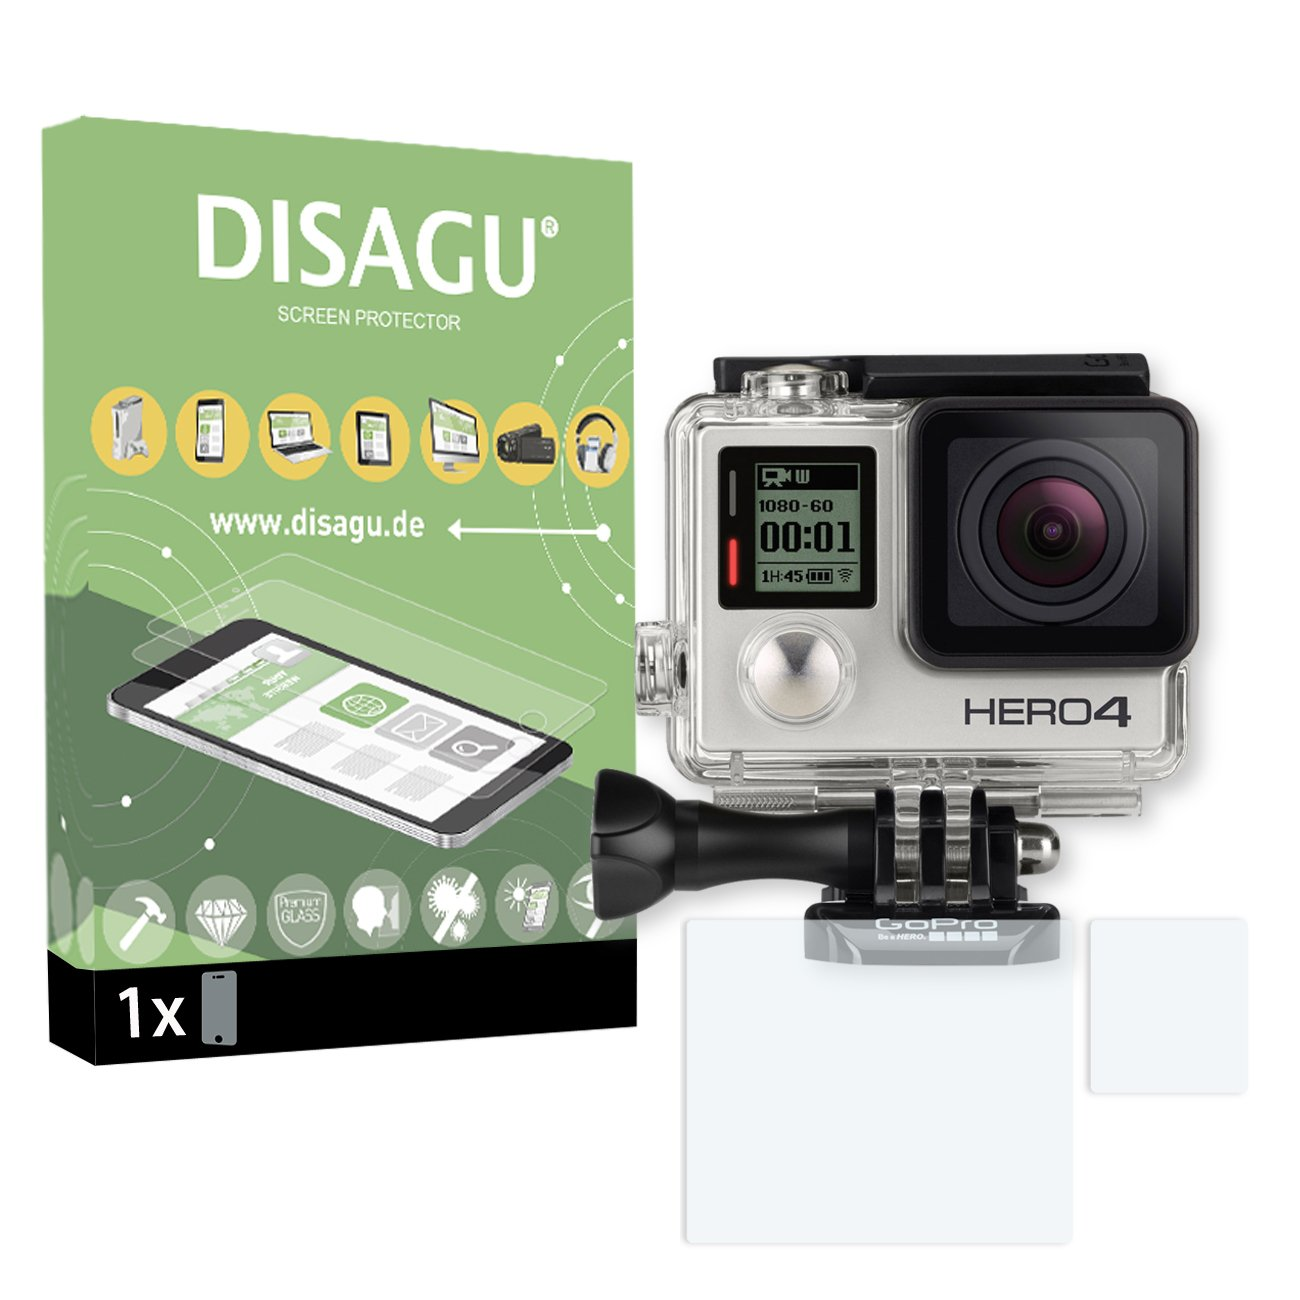 1x DISAGU Flexible Tempered Glass for GoPro Hero 4 Armor Glass 9H Hard Glass Screen Protective Film 3D Compatible #tg7941